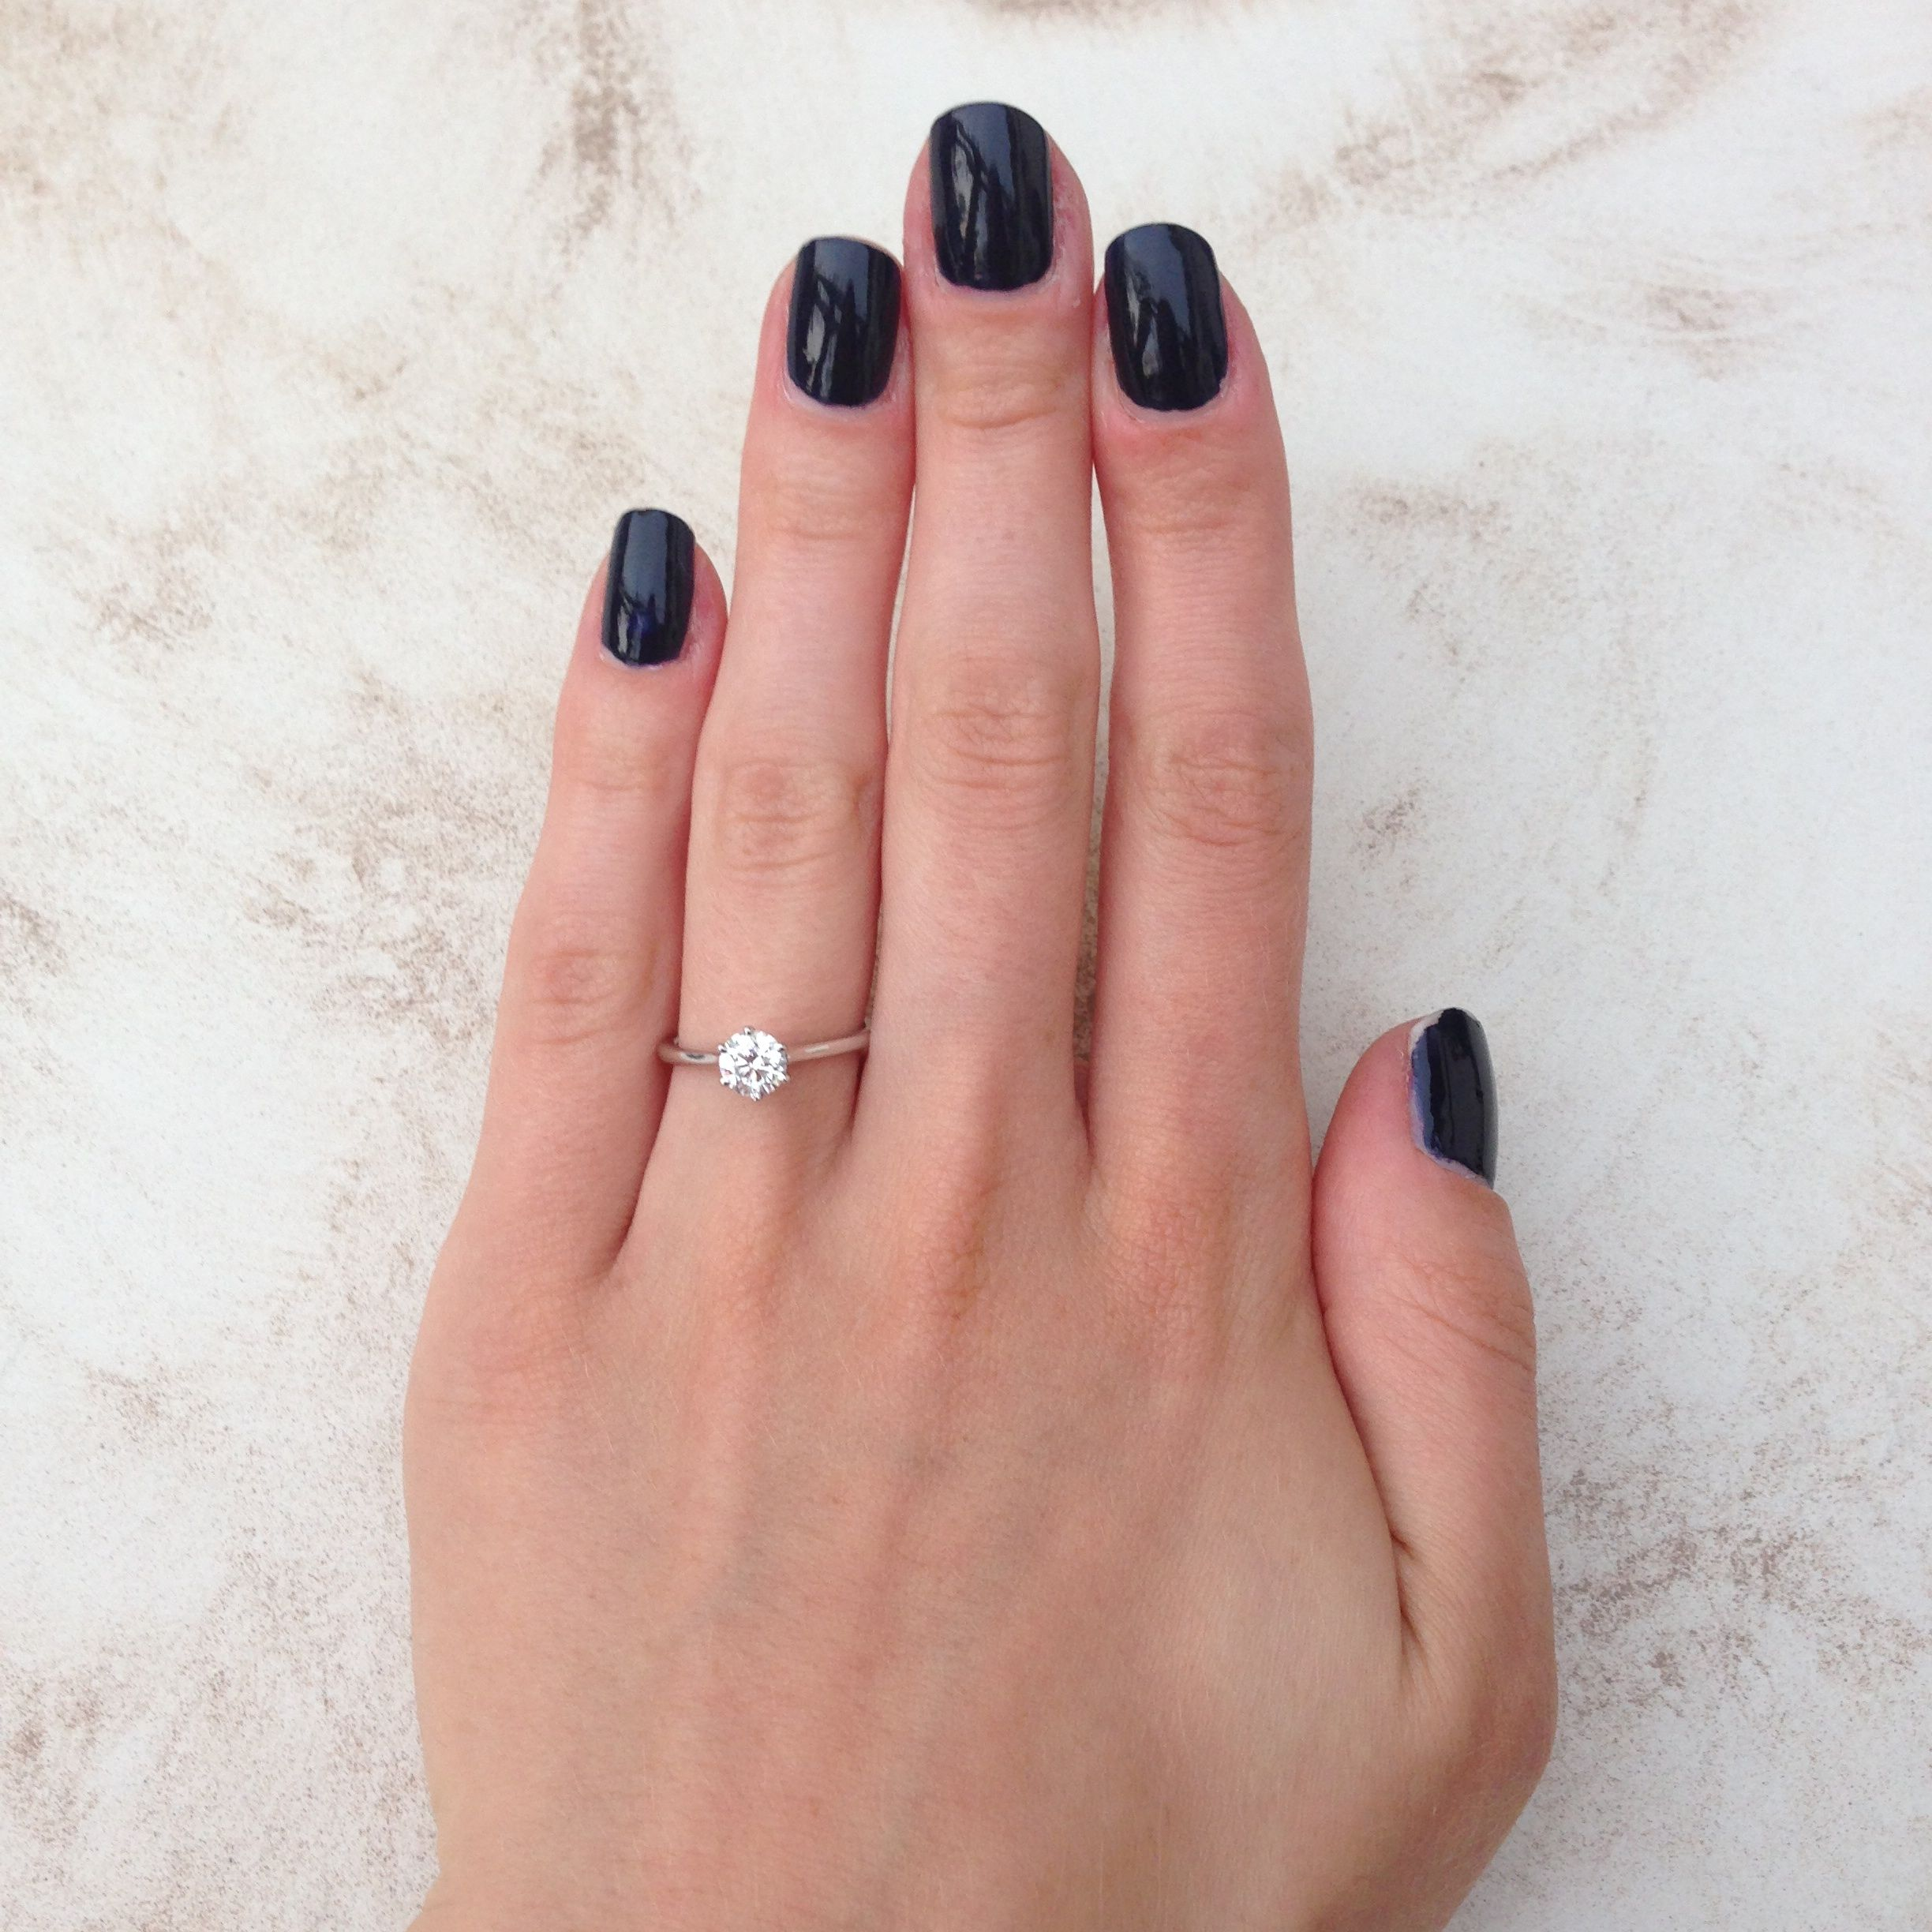 Petite nouveau Picking a classic engagement ring from Blue Nile ...